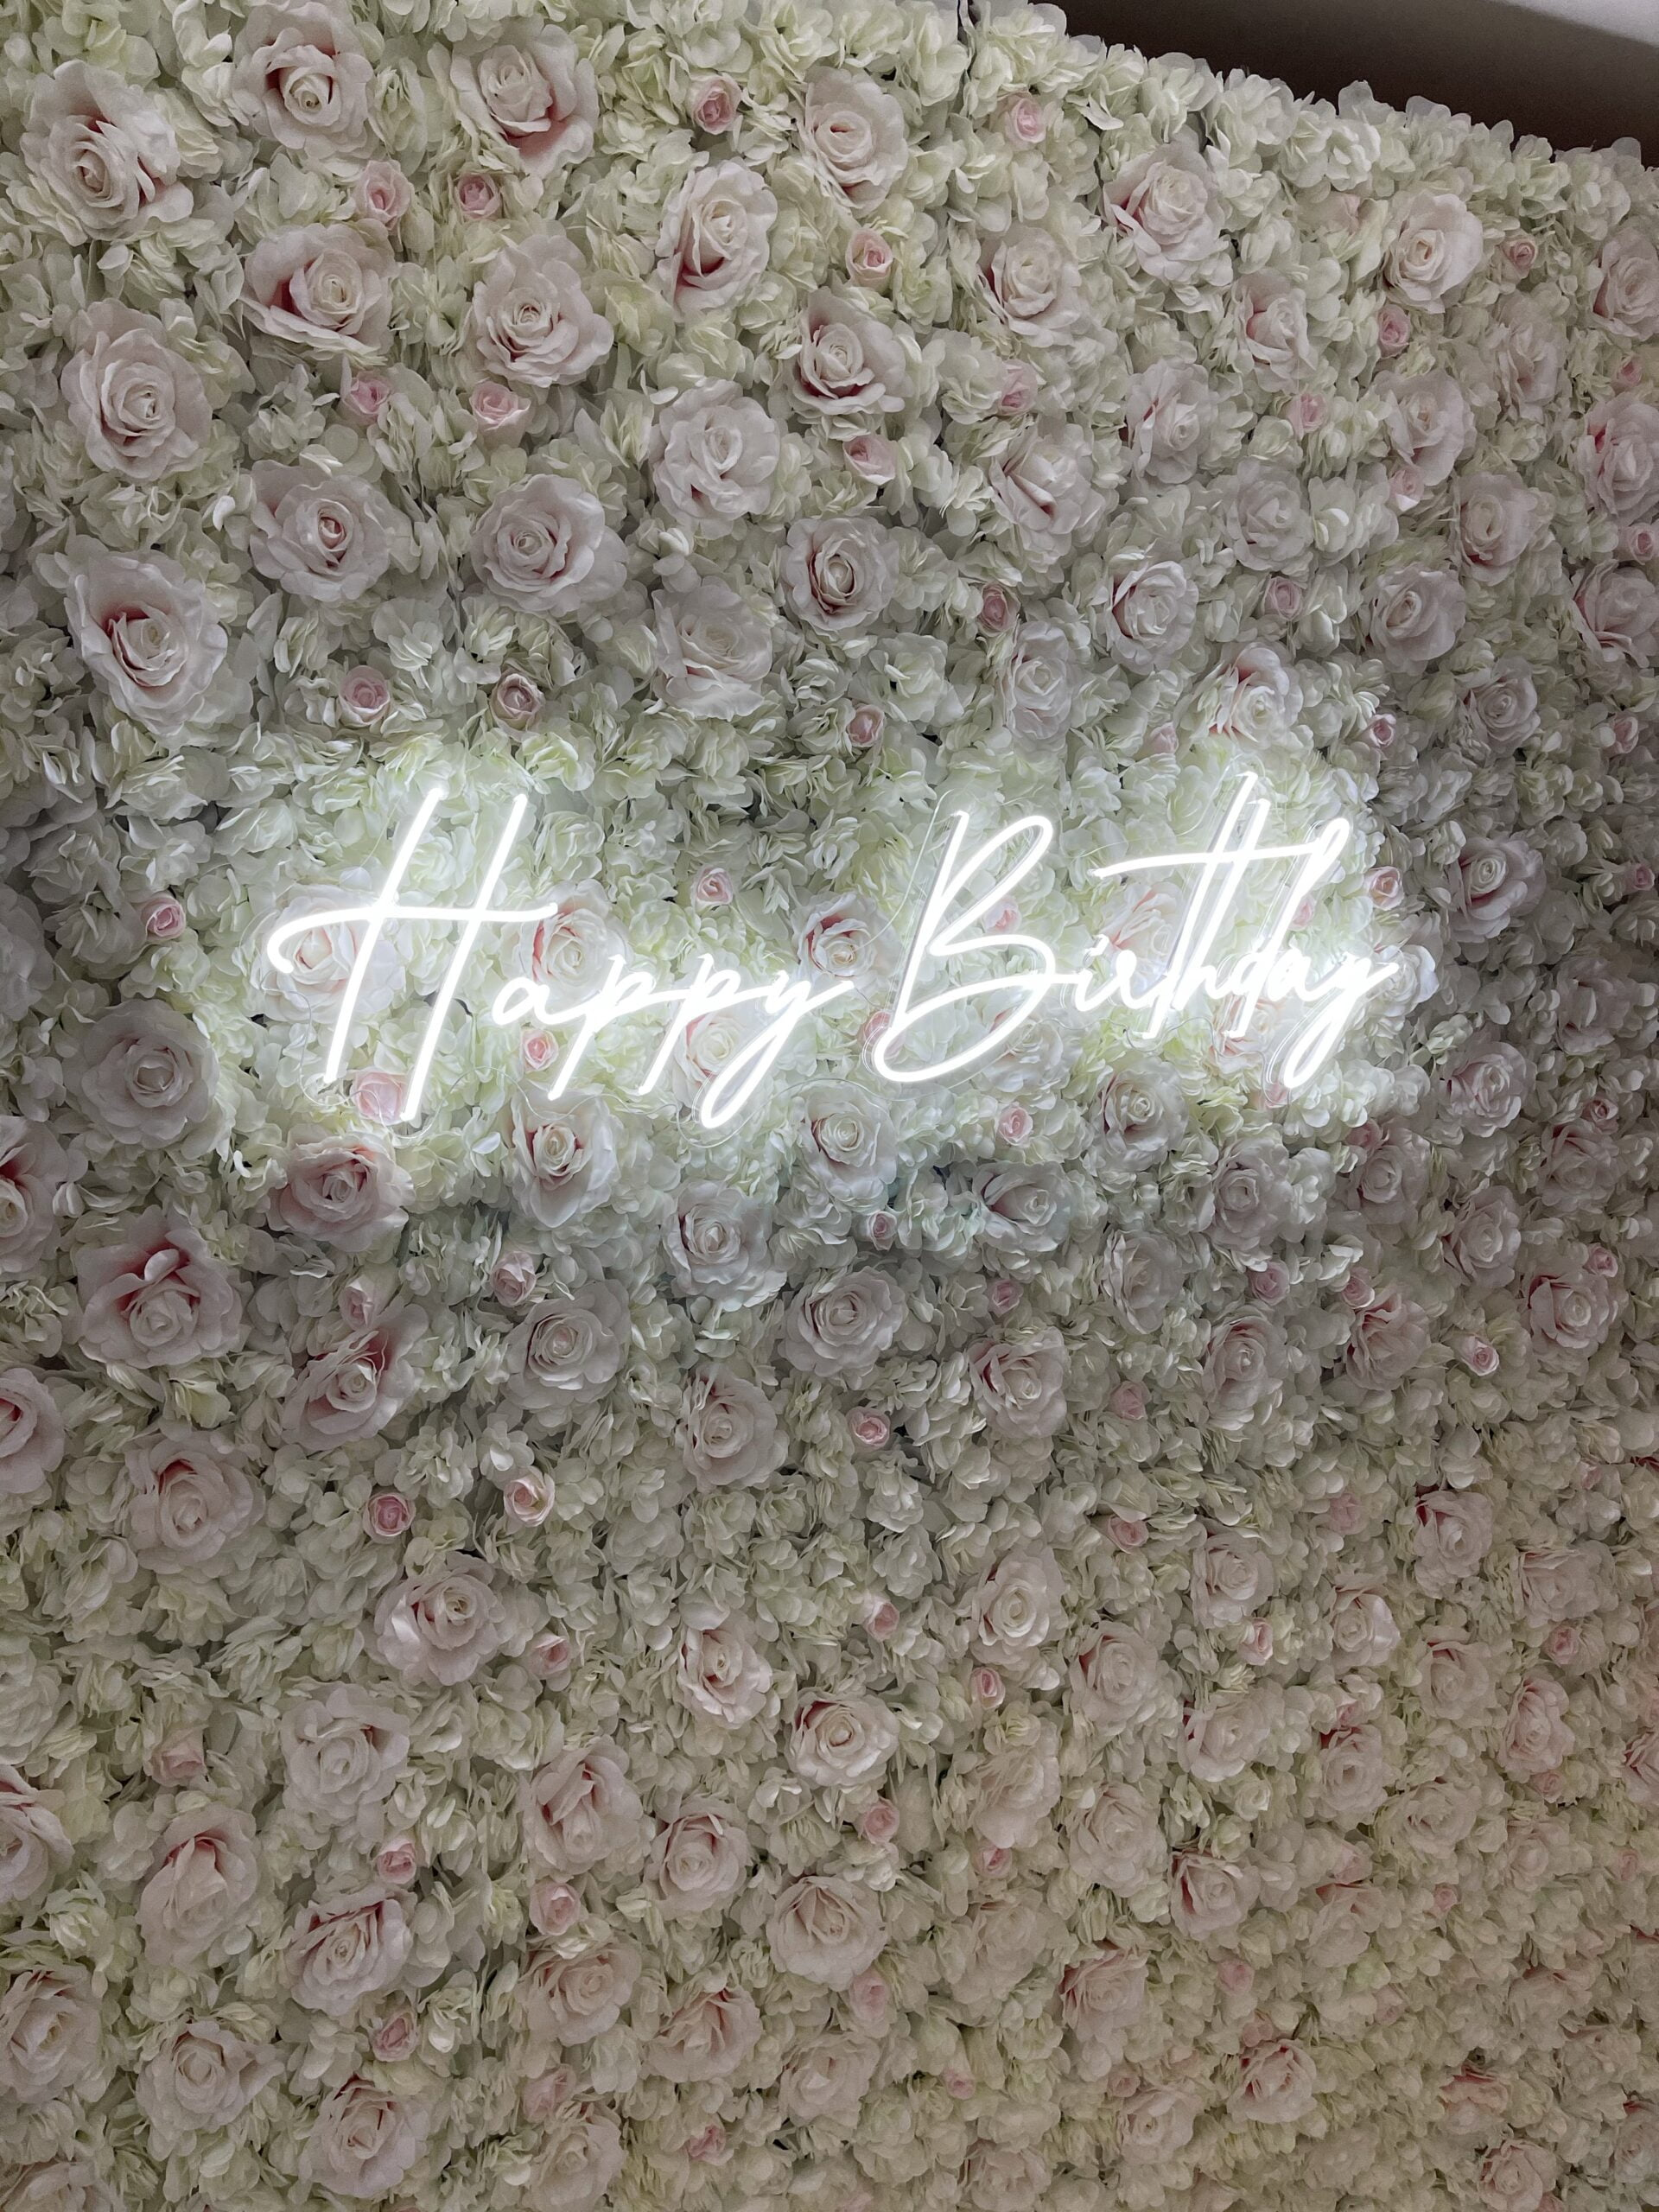 Neon Sign (From £45)